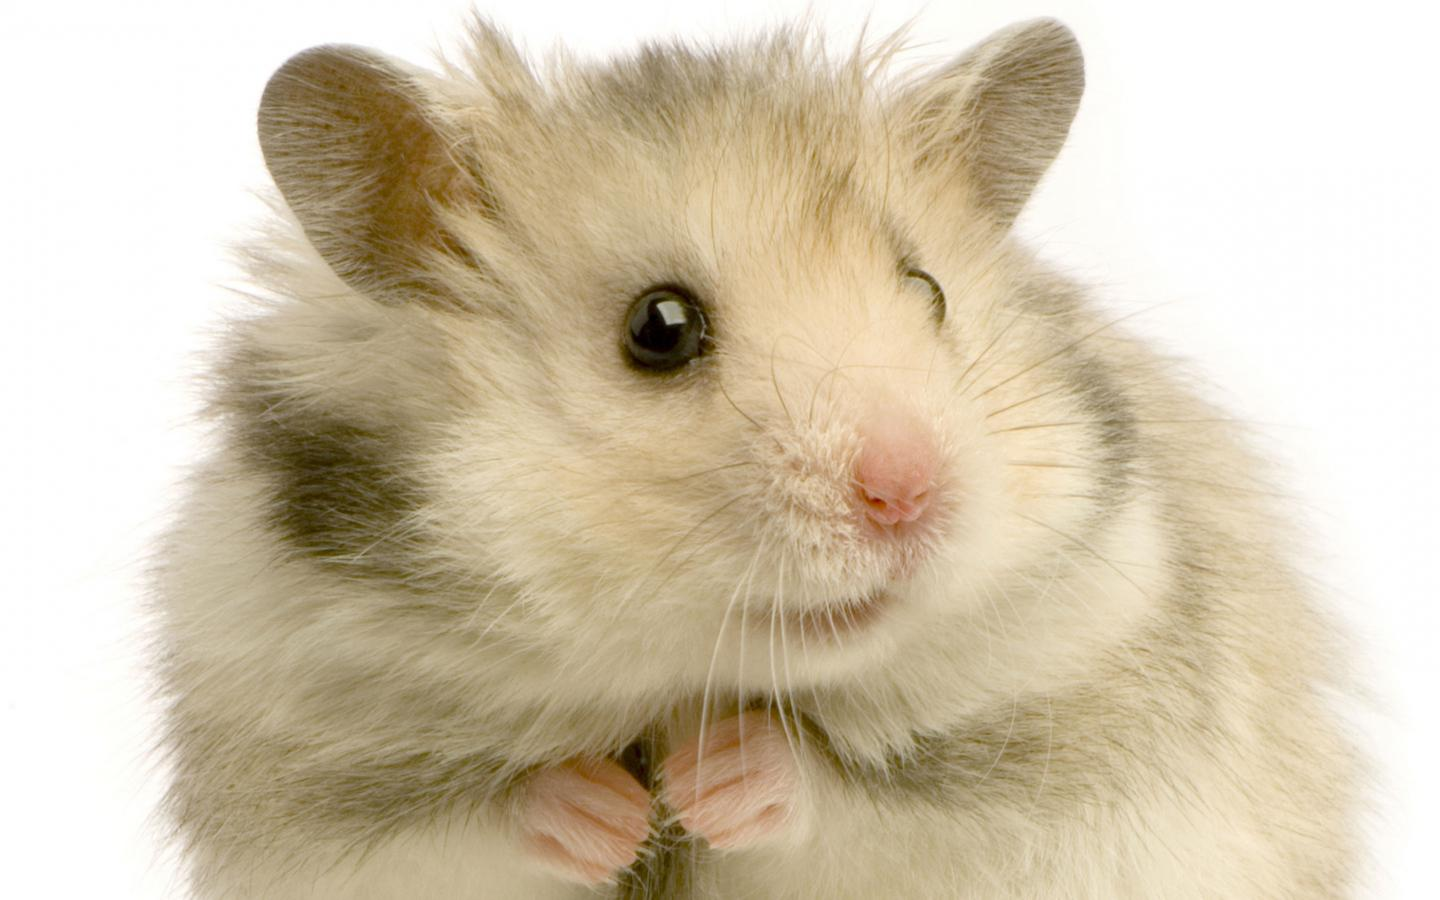 Hamster   126749   High Quality and Resolution Wallpapers on 1440x900